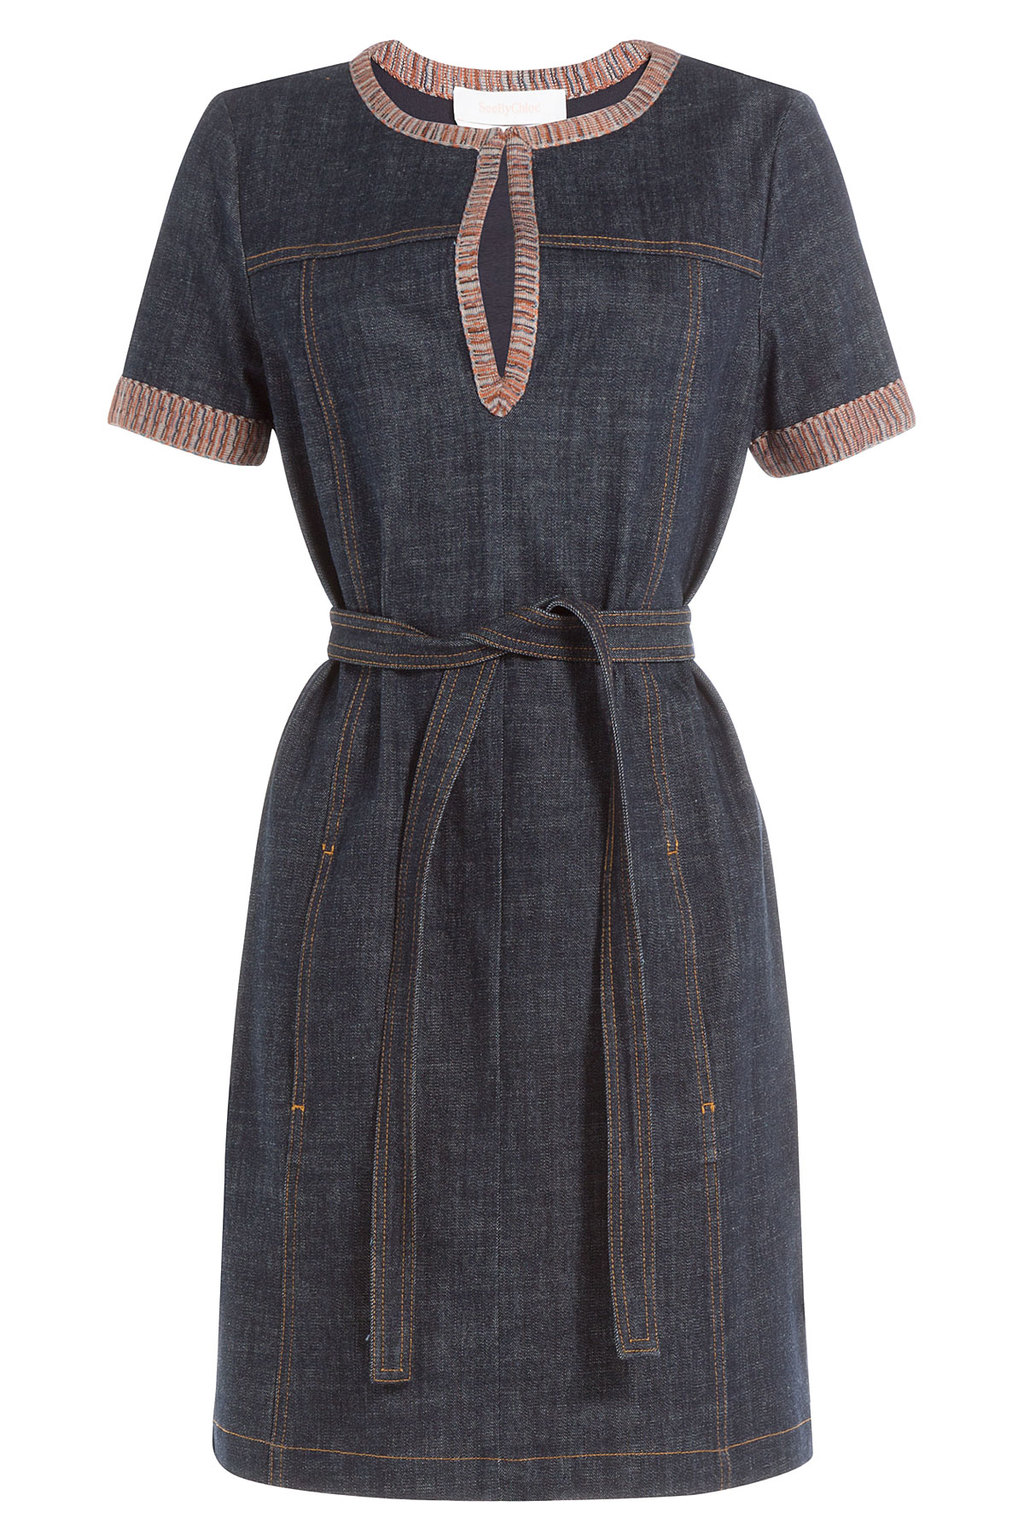 Denim Dress With Knit Trim - style: tunic; length: mid thigh; pattern: striped; secondary colour: burgundy; predominant colour: navy; occasions: casual; fit: body skimming; neckline: peep hole neckline; fibres: cotton - 100%; sleeve length: short sleeve; sleeve style: standard; texture group: denim; pattern type: fabric; pattern size: light/subtle; season: s/s 2016; wardrobe: highlight